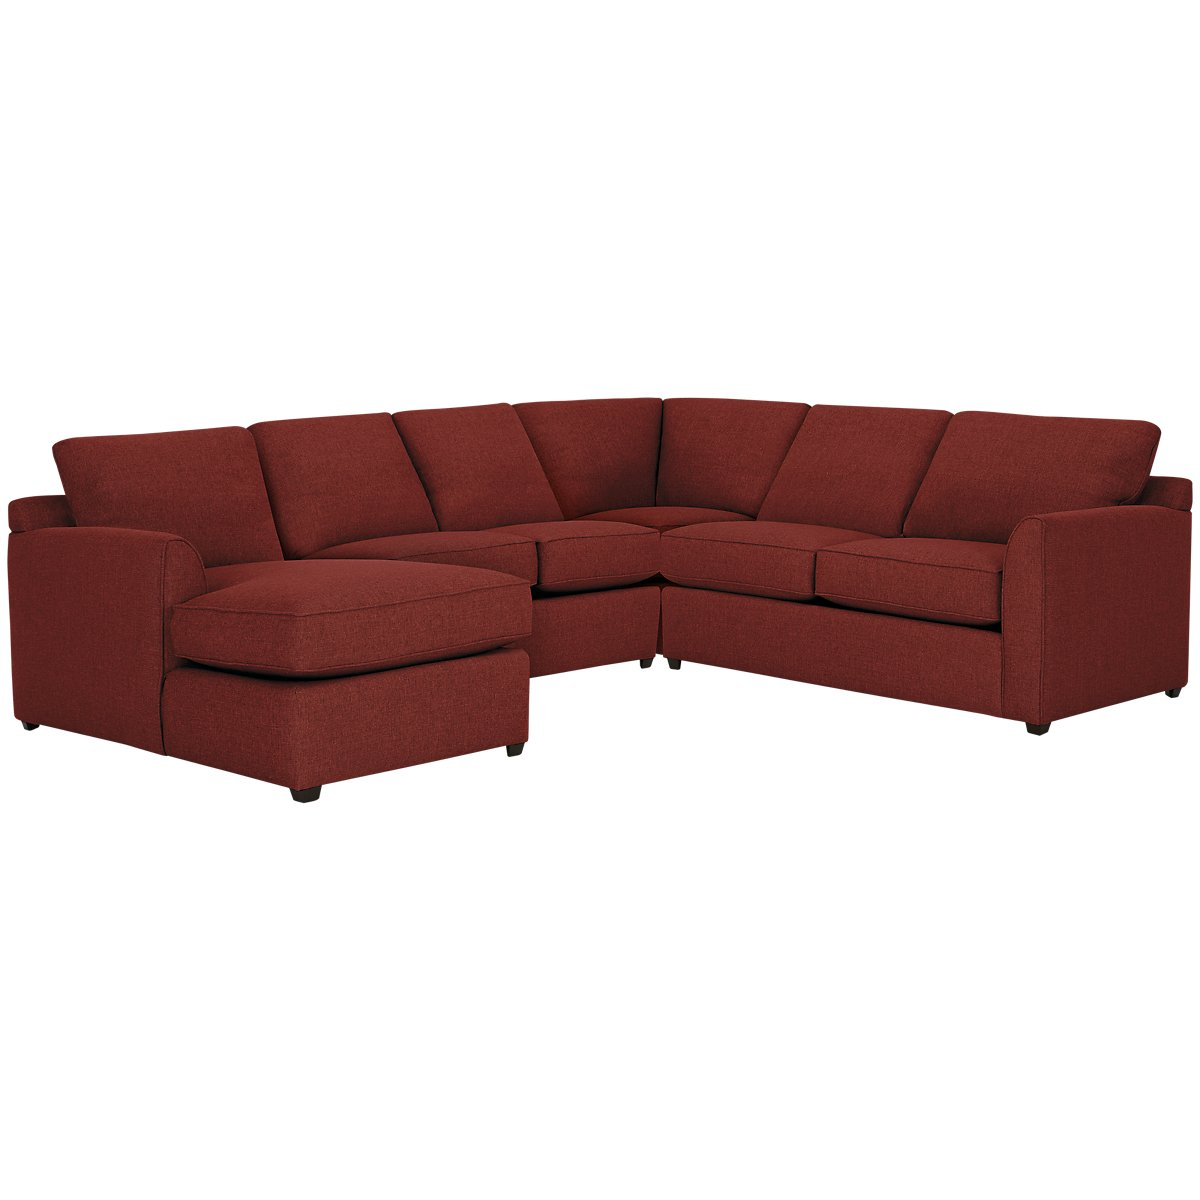 Asheville Red Fabric Medium Left Chaise Sectional